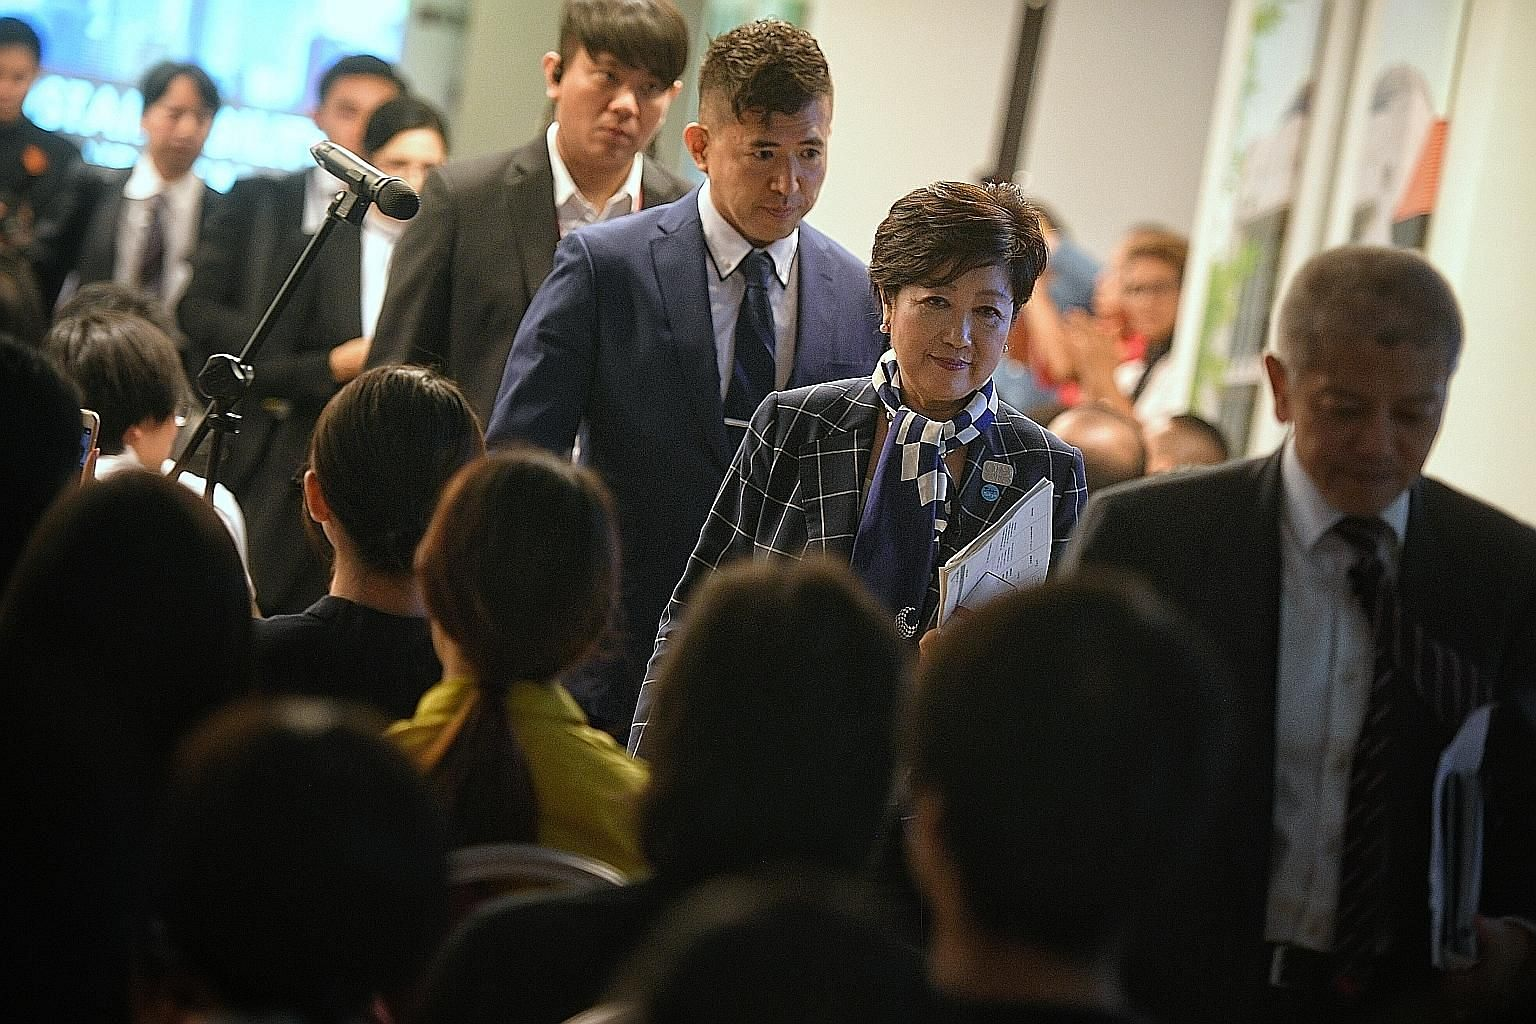 Tokyo governor Yuriko Koike at the Lee Kuan Yew School of Public Policy yesterday, where she gave a lecture about environmental and financial leadership in Tokyo. Her three-day visit to Singapore ends today.